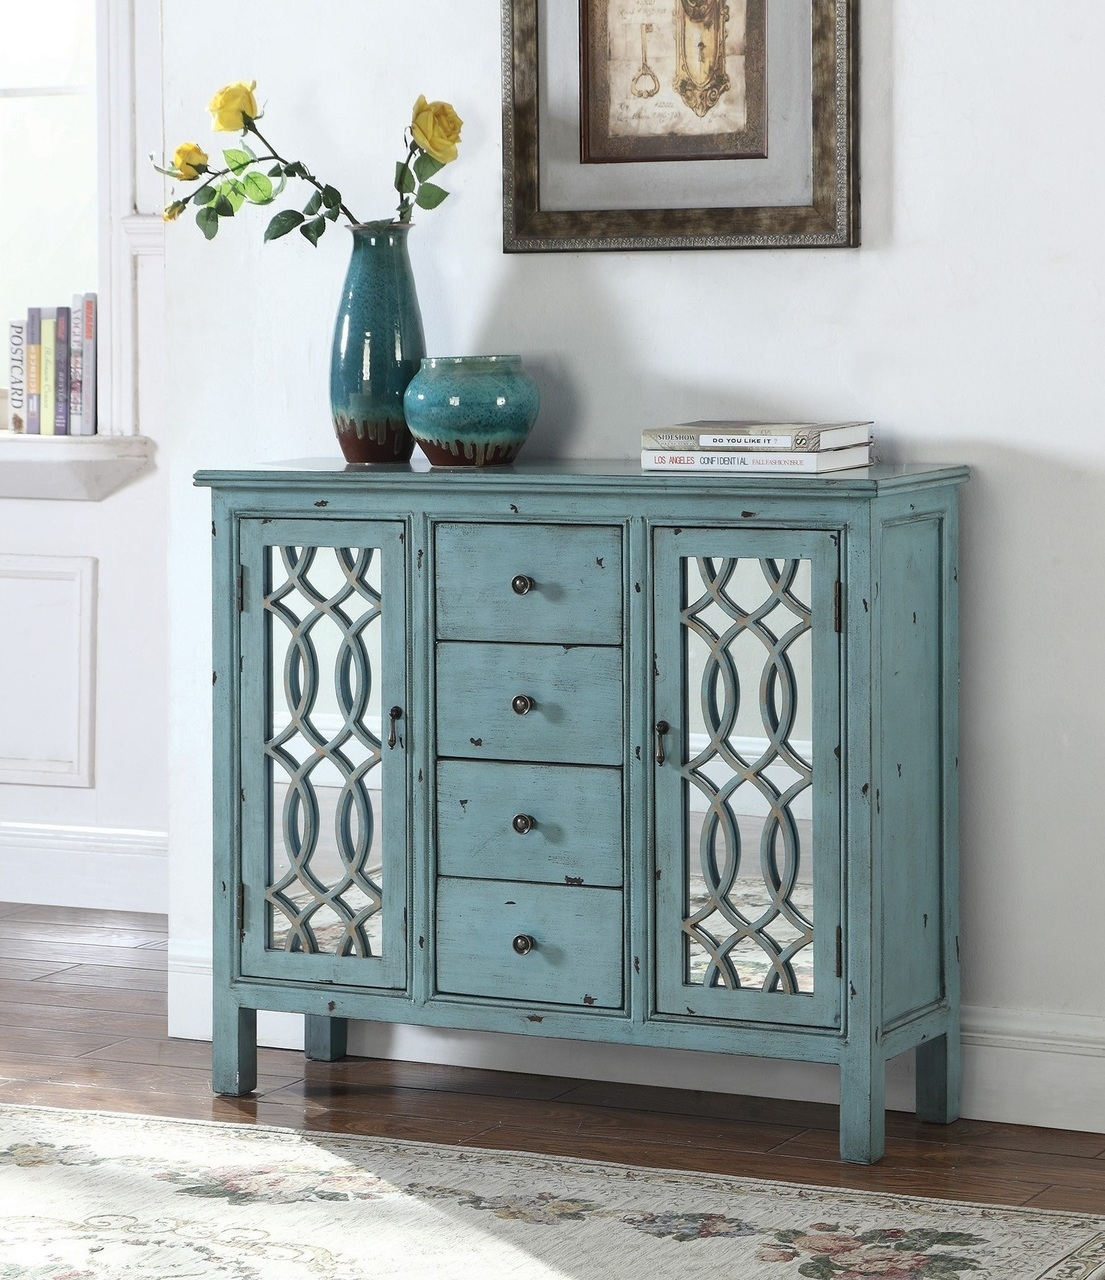 antique blue accent table inlay door design teal and white umbrella resin wicker furniture small designer coffee tables drum throne parts pedestal kitchen reclaimed wood counter